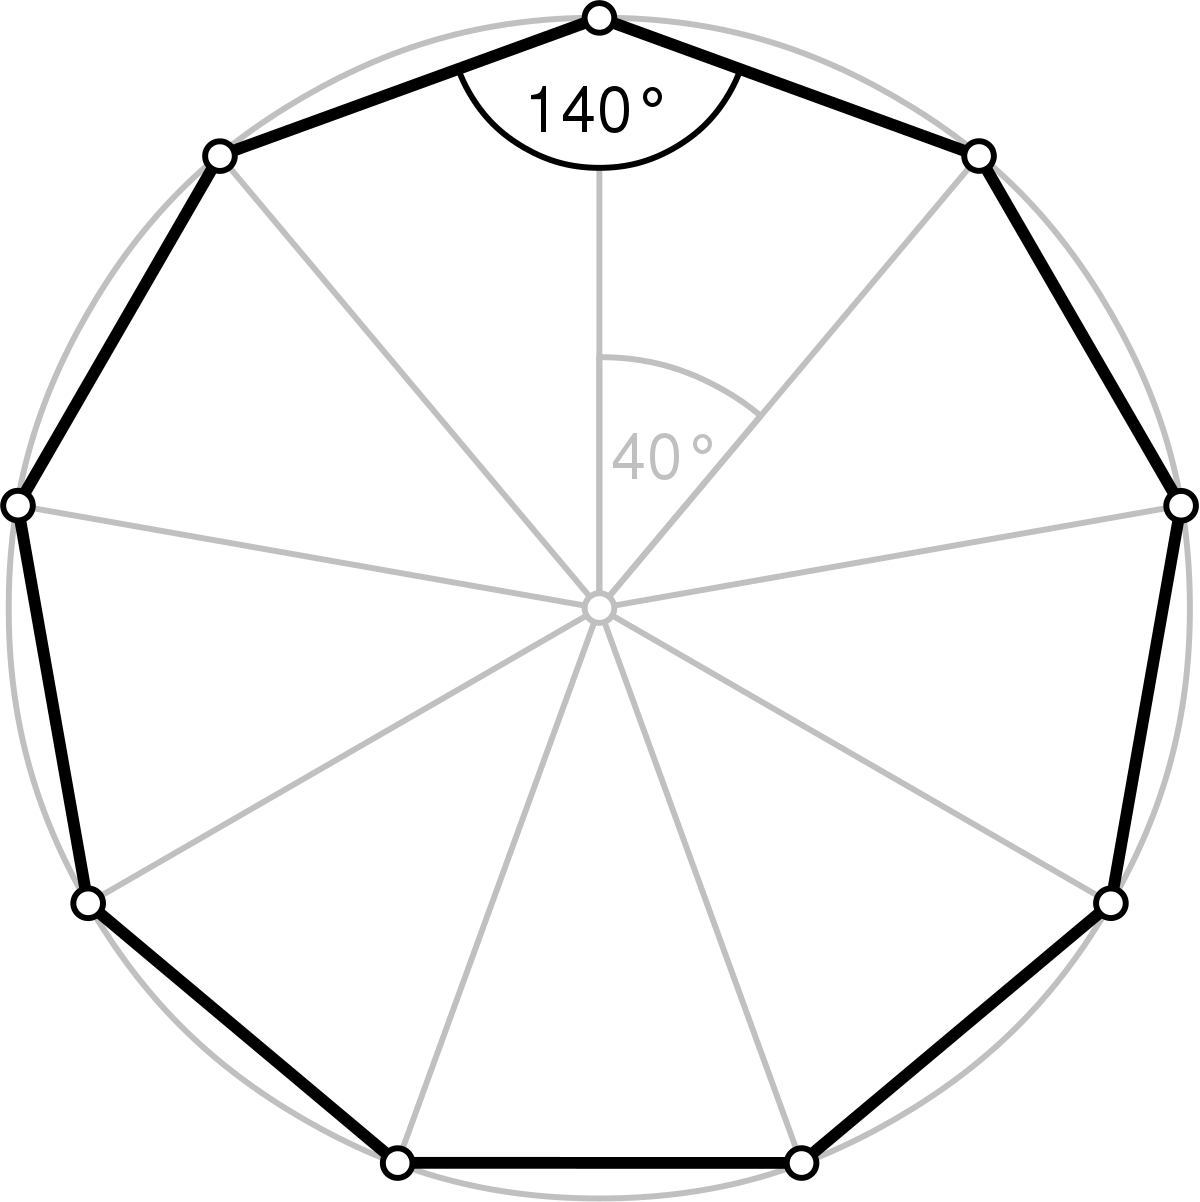 Drawing polygons 50 side. Nonagon wikipedia